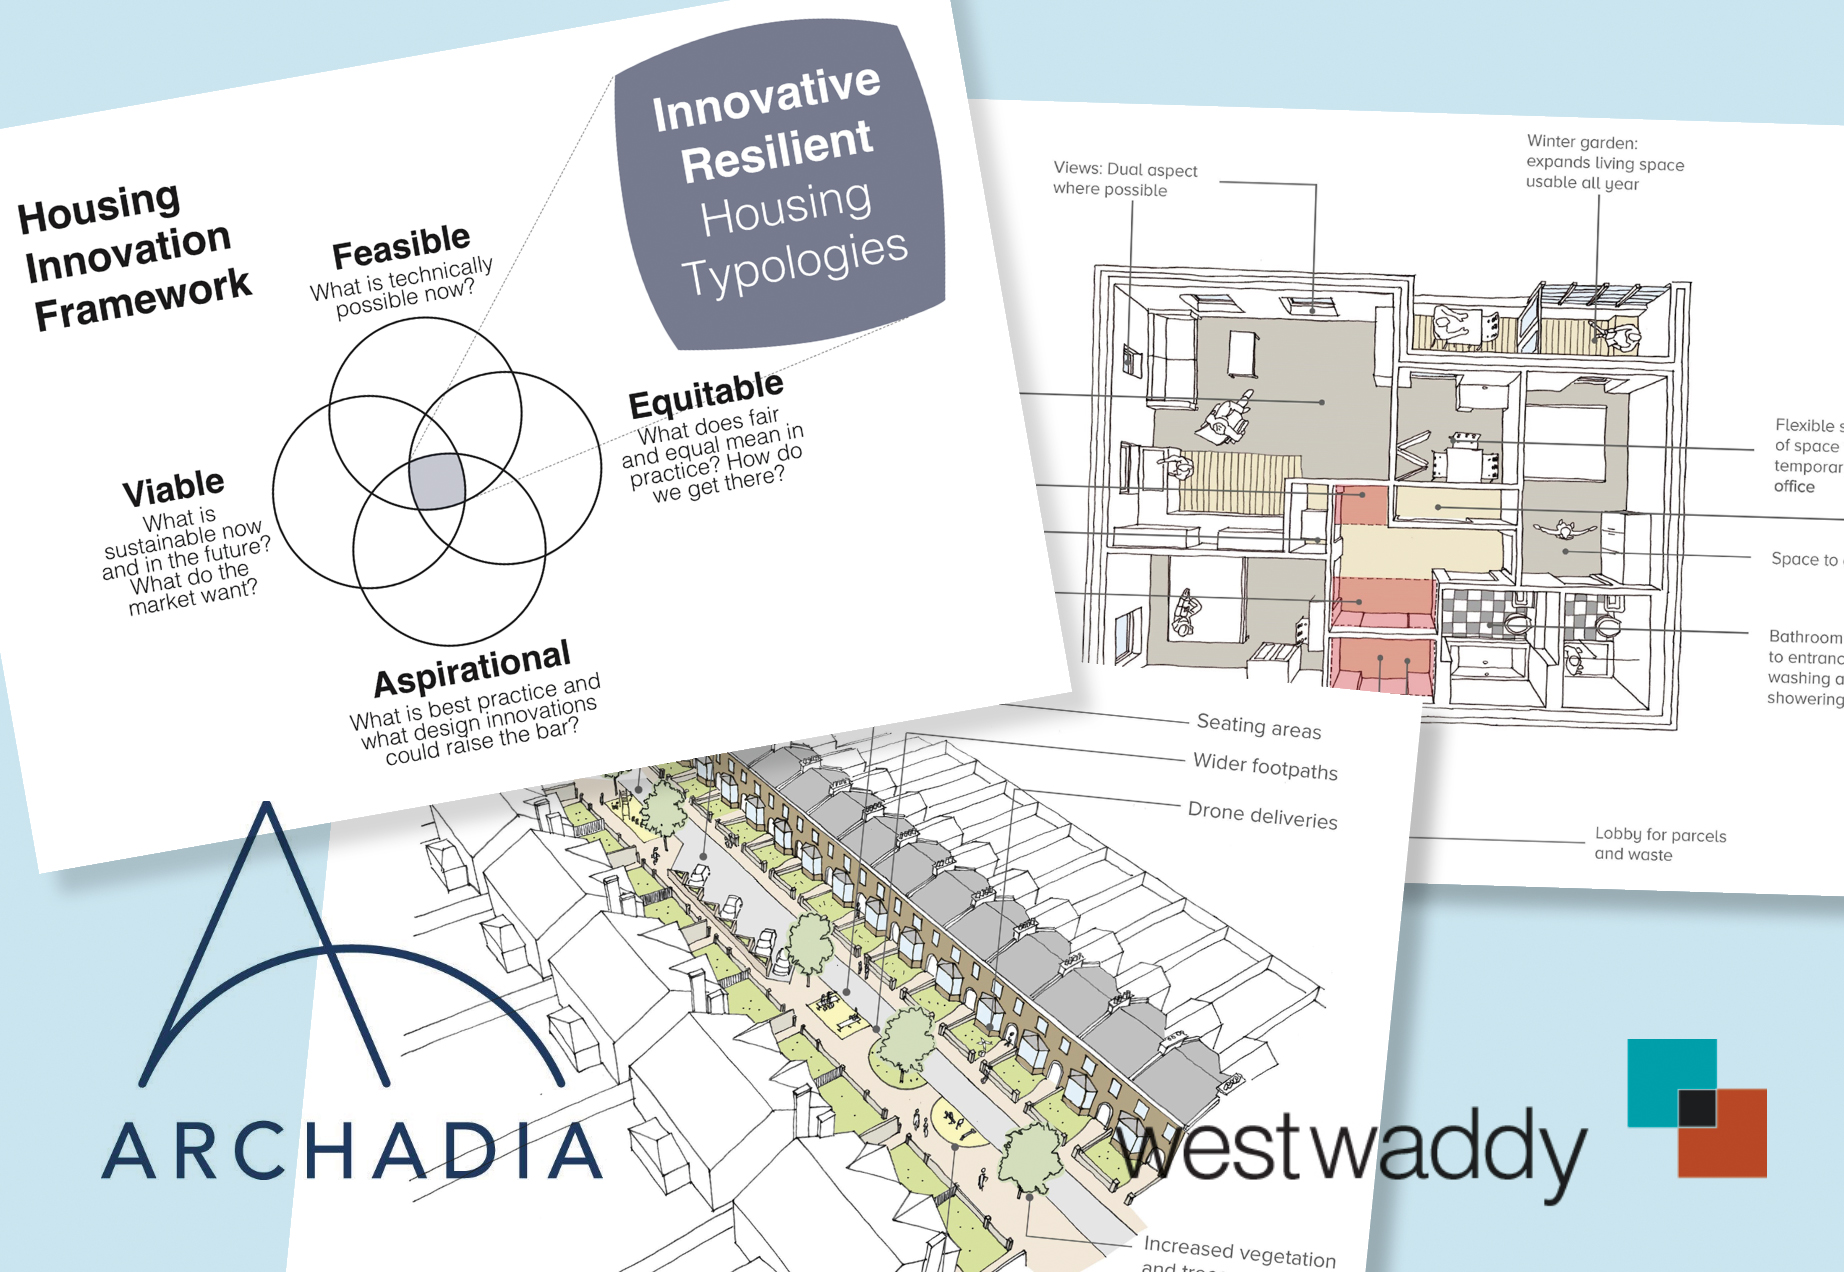 Archadia, Covid-19, Covid, Post Covid, Round Table, Round Table Discussion, Innovative Housing Design, Inclusive Design, Accessible design, West Waddy, Architects, Town Planners, Urban Designers